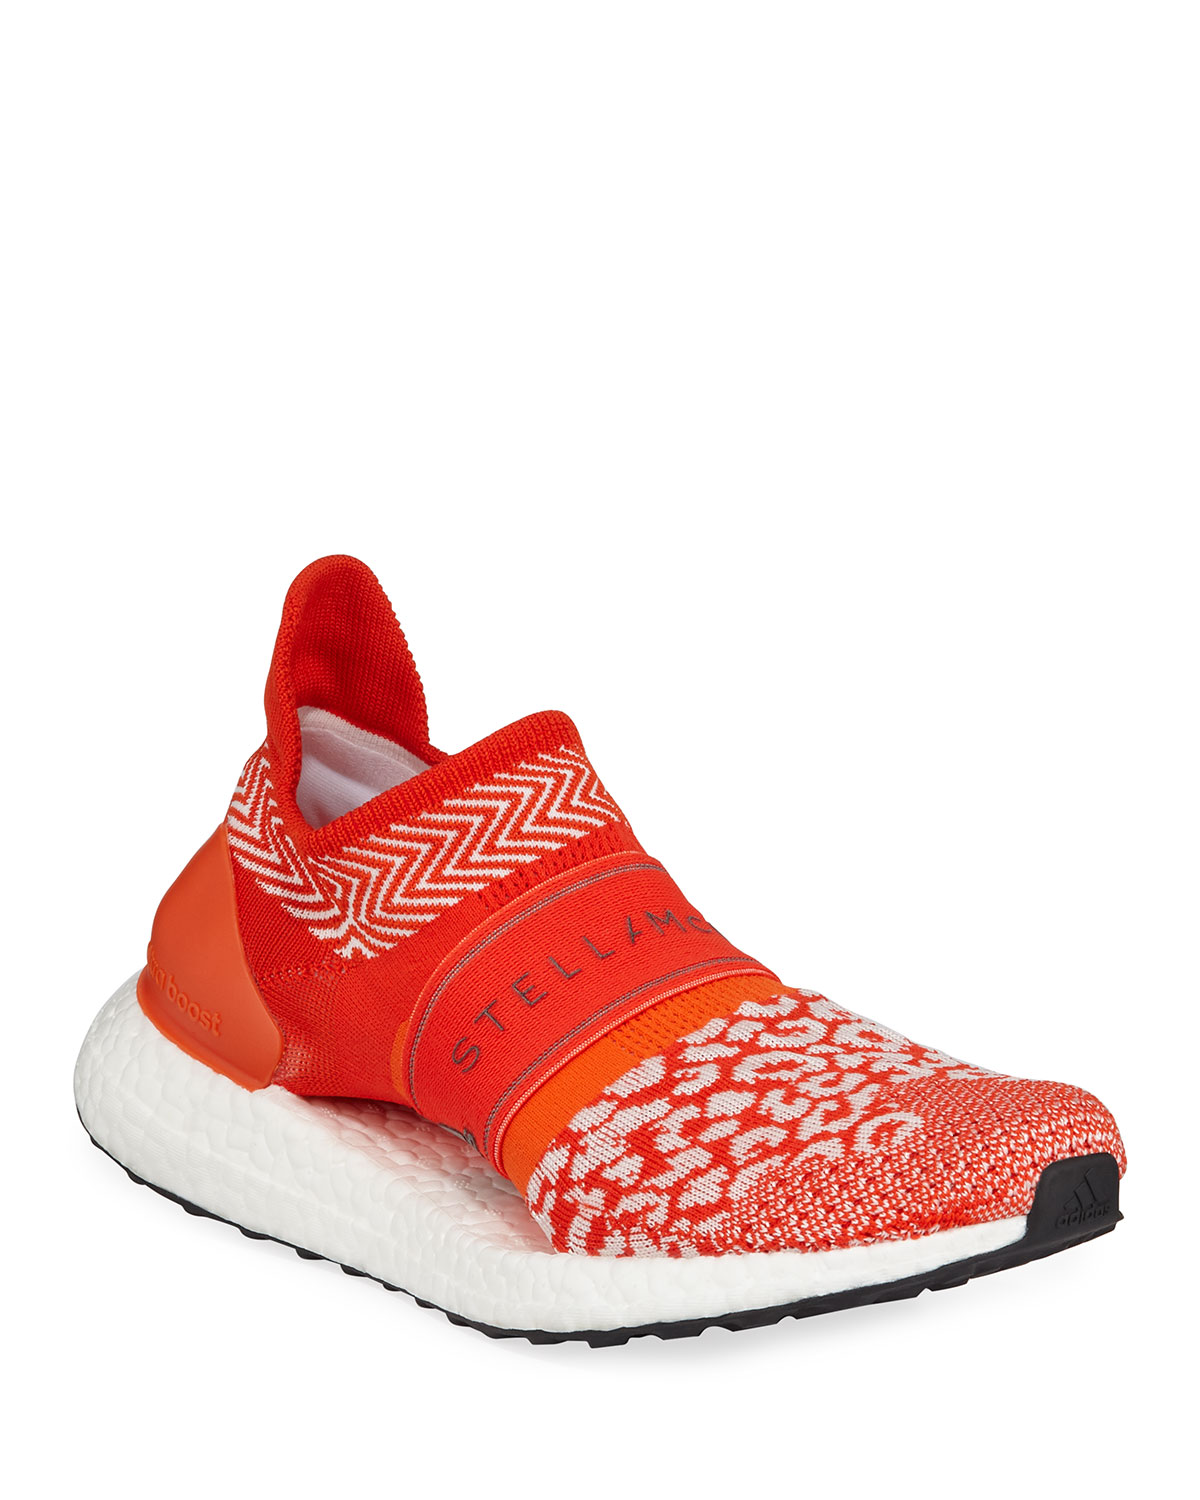 8c776882ef67 adidas by Stella McCartney UltraBoost X 3D Sneakers | Neiman Marcus